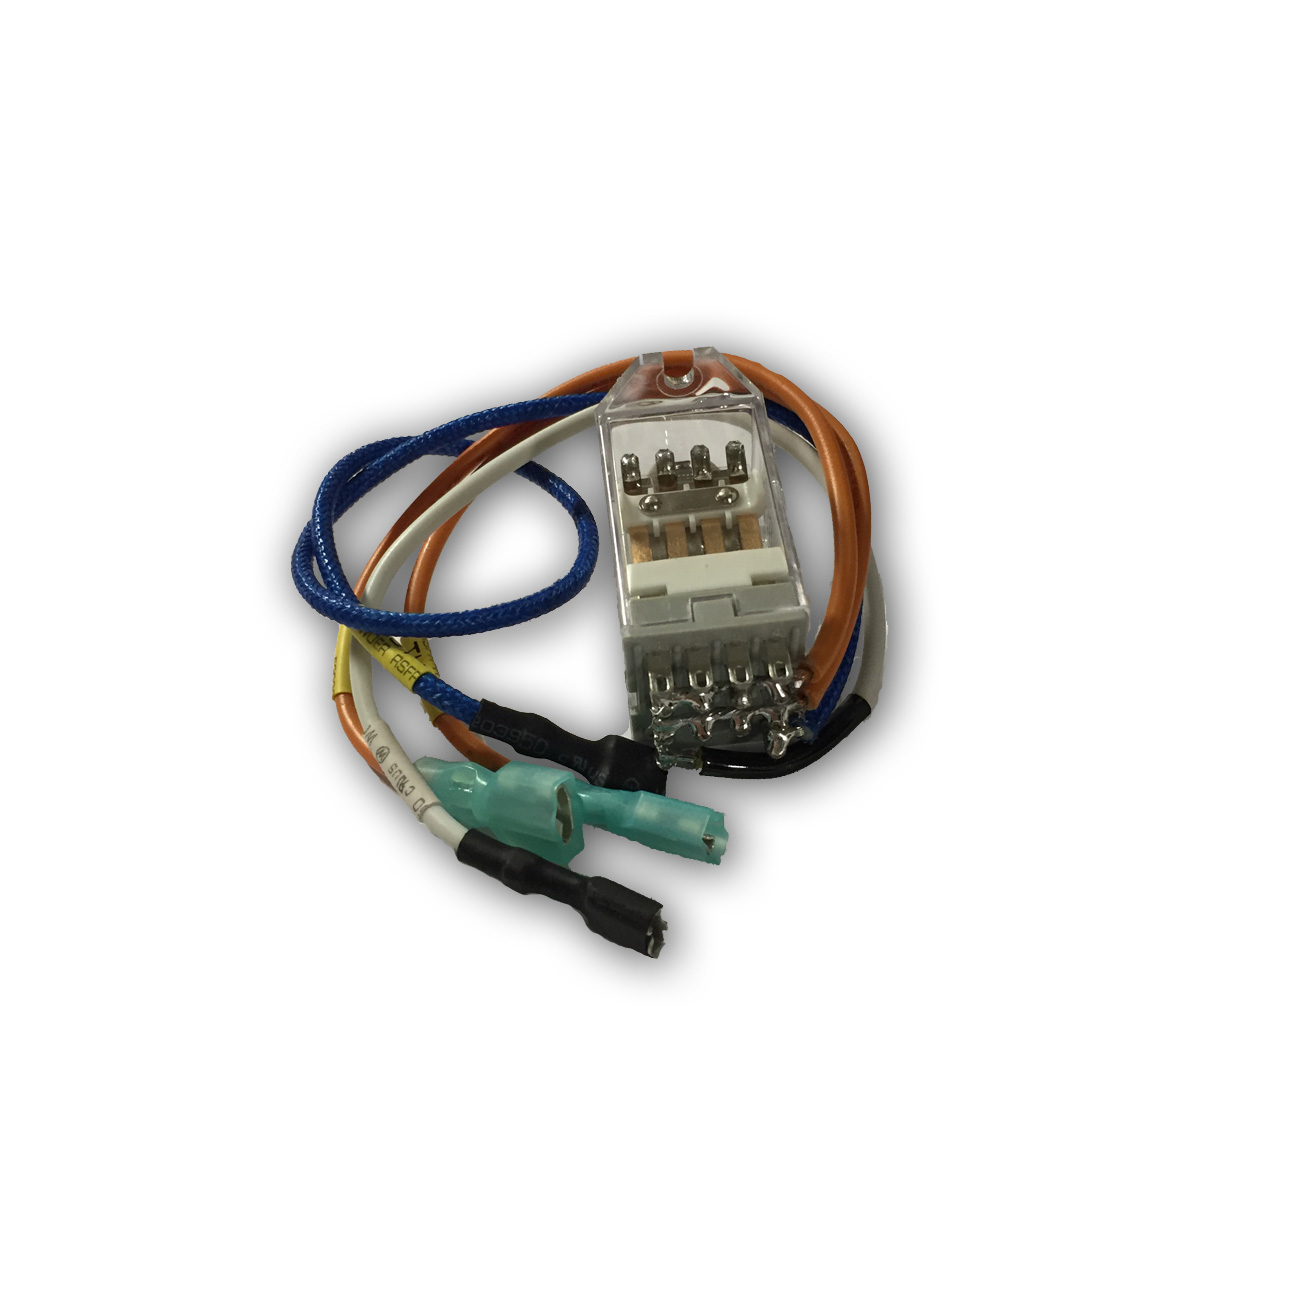 160479-01-Relay-Assemble-side-view-ProCom-Heating